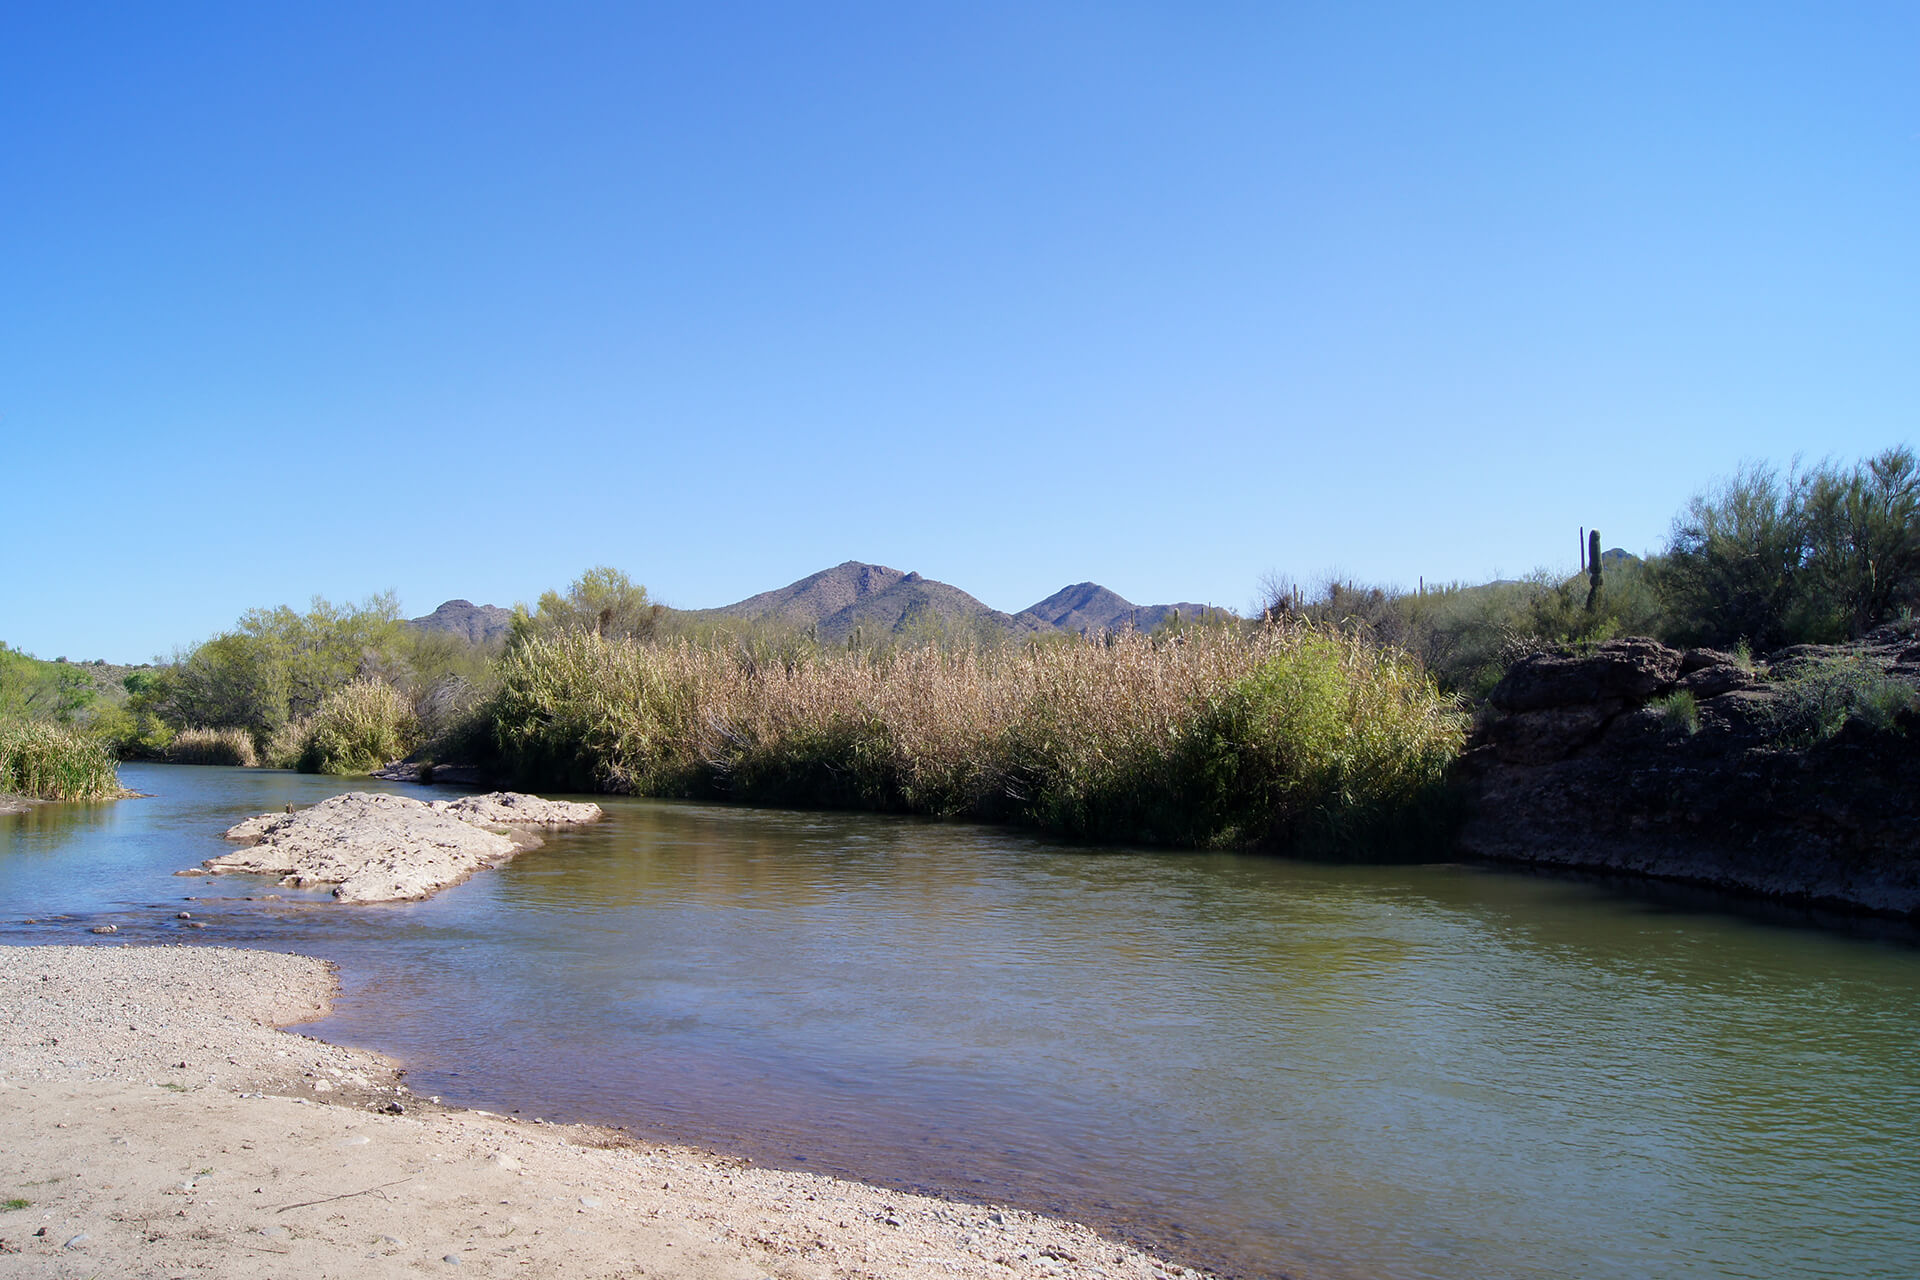 arizona river computer wallpaper 61863